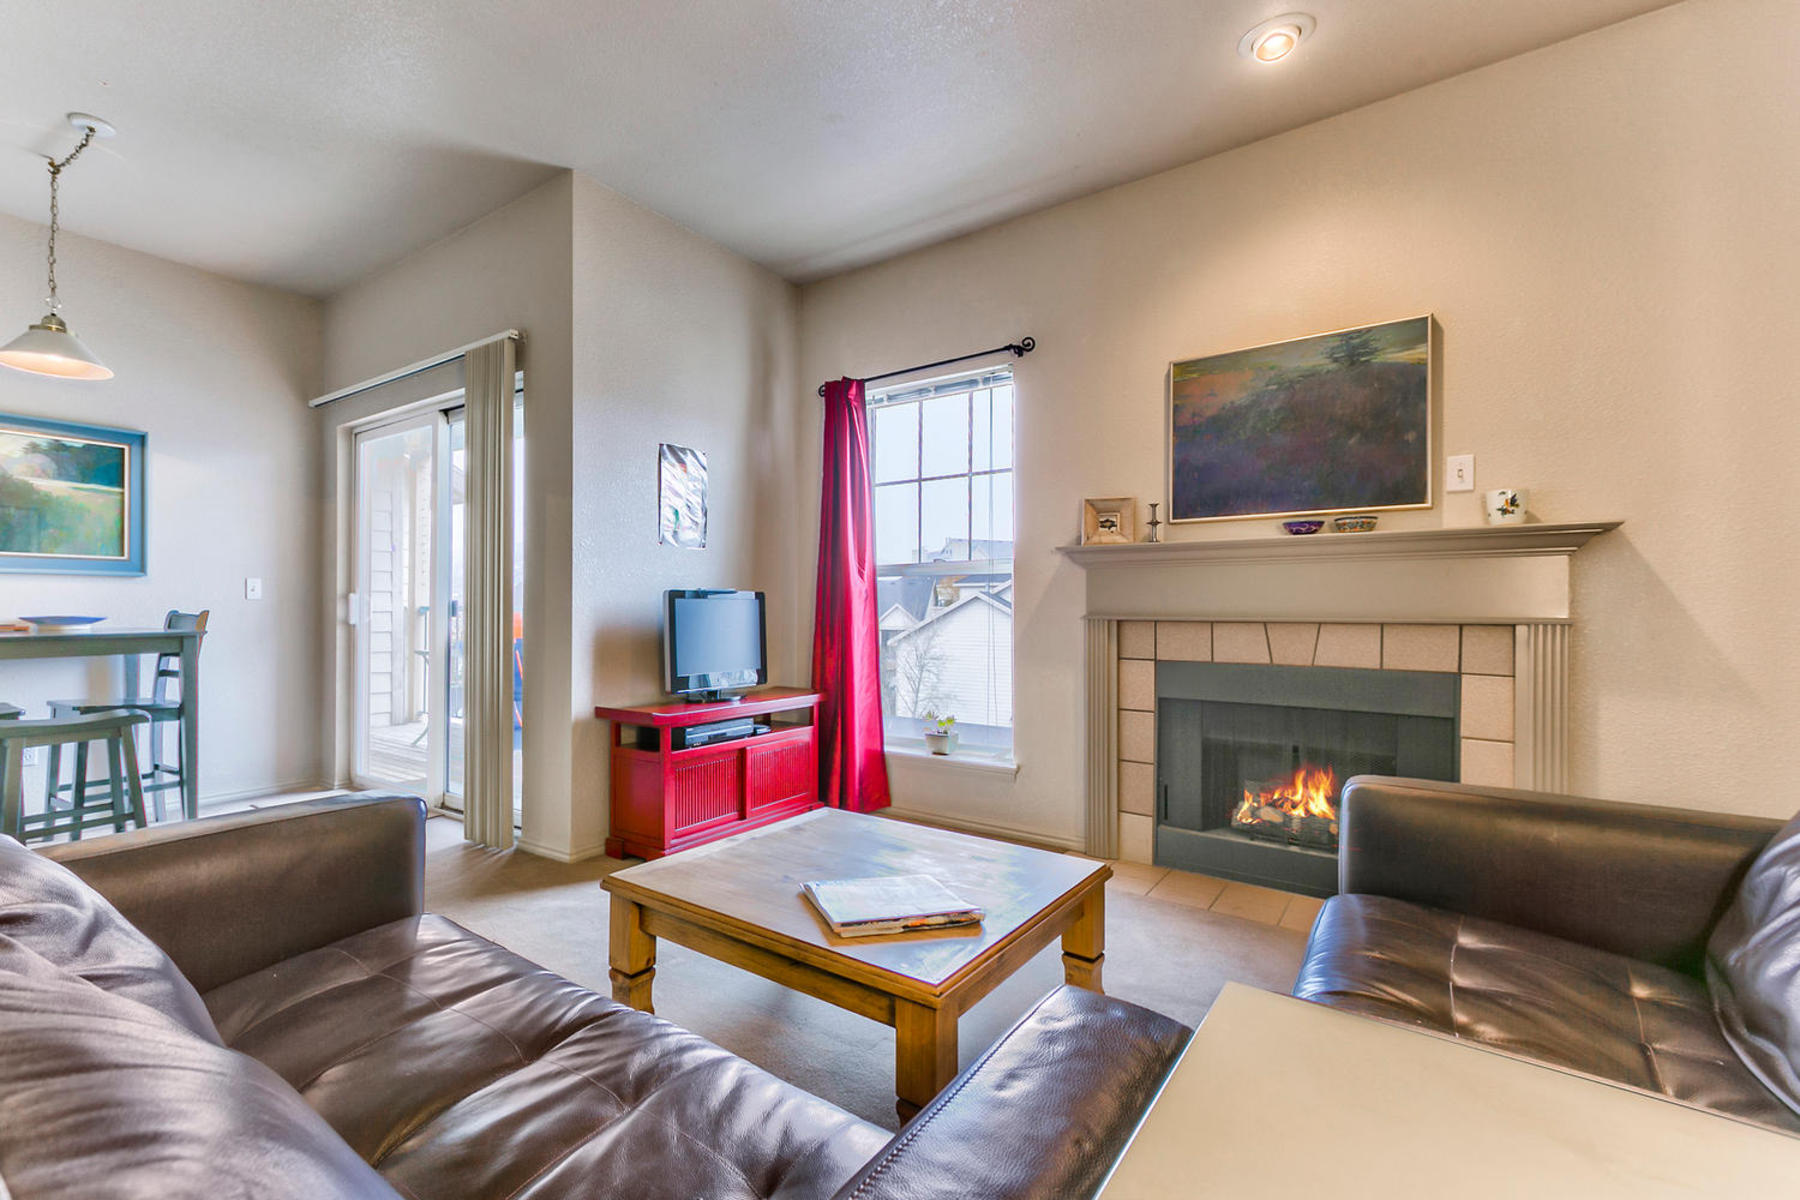 Condominium for Sale at Top Level With a View 900 Bitner Rd #N34 Park City, Utah 84098 United States